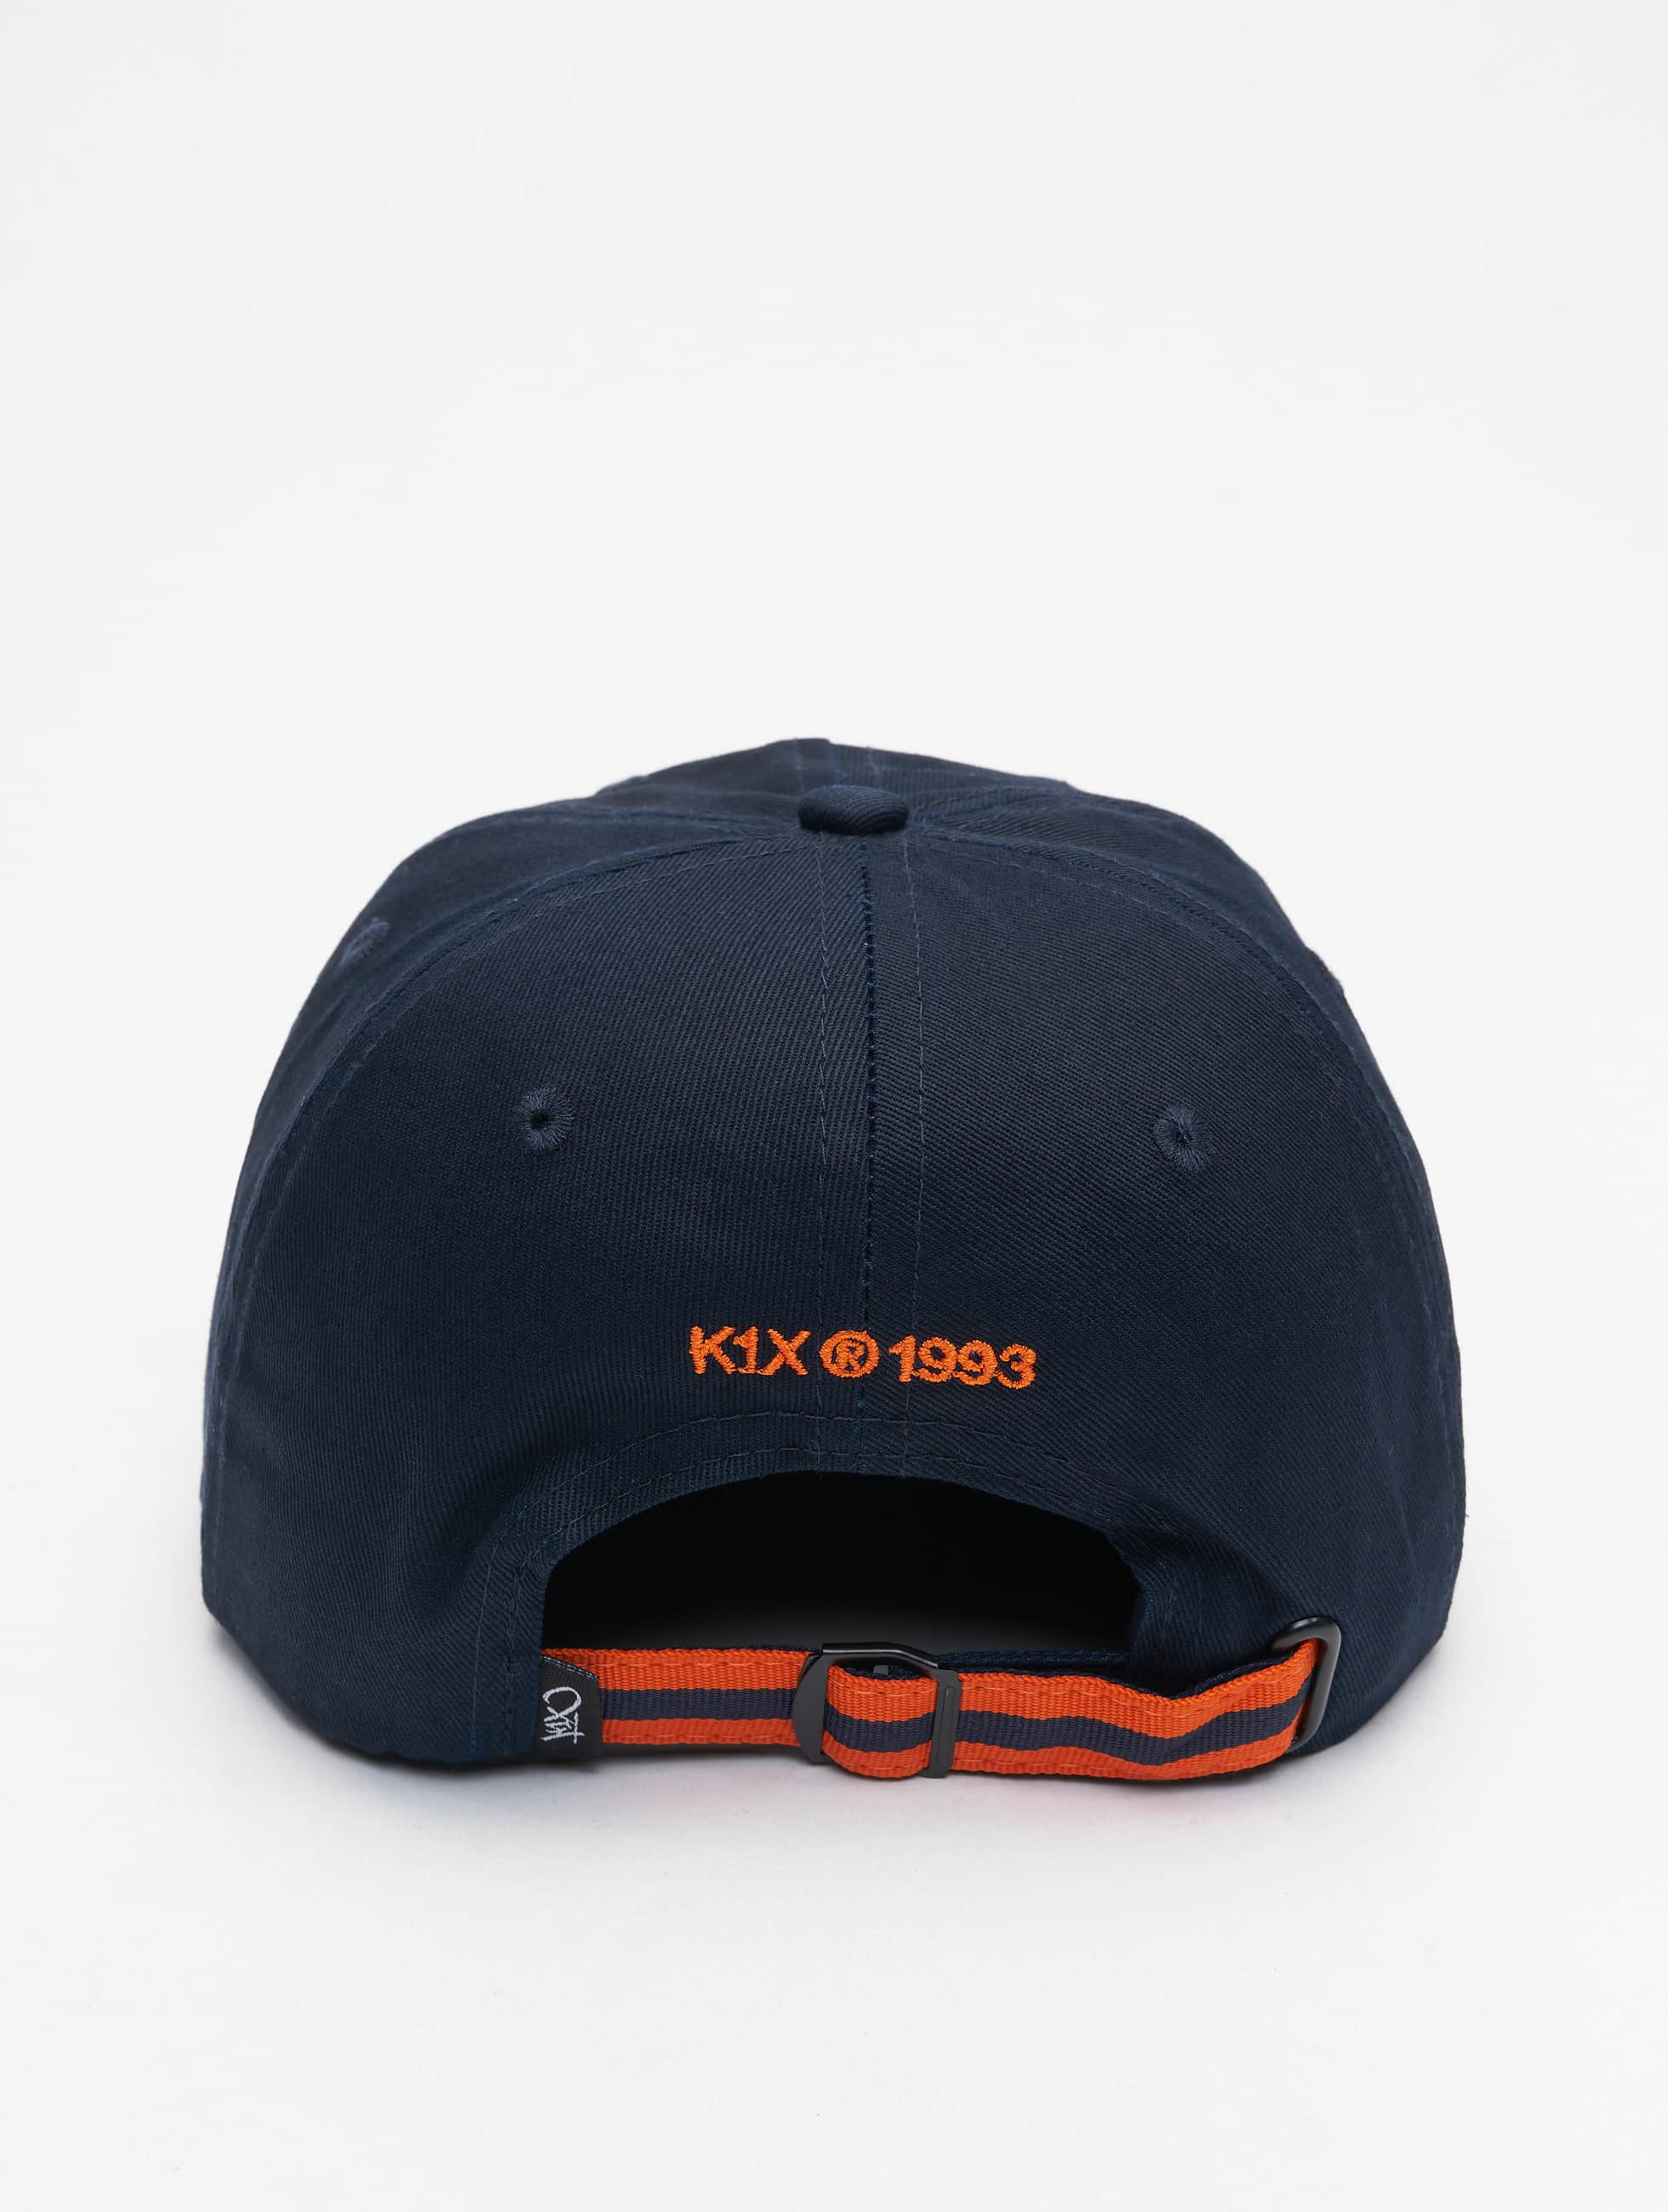 K1X Casquette Snapback & Strapback Play Hard Basketball Sports bleu